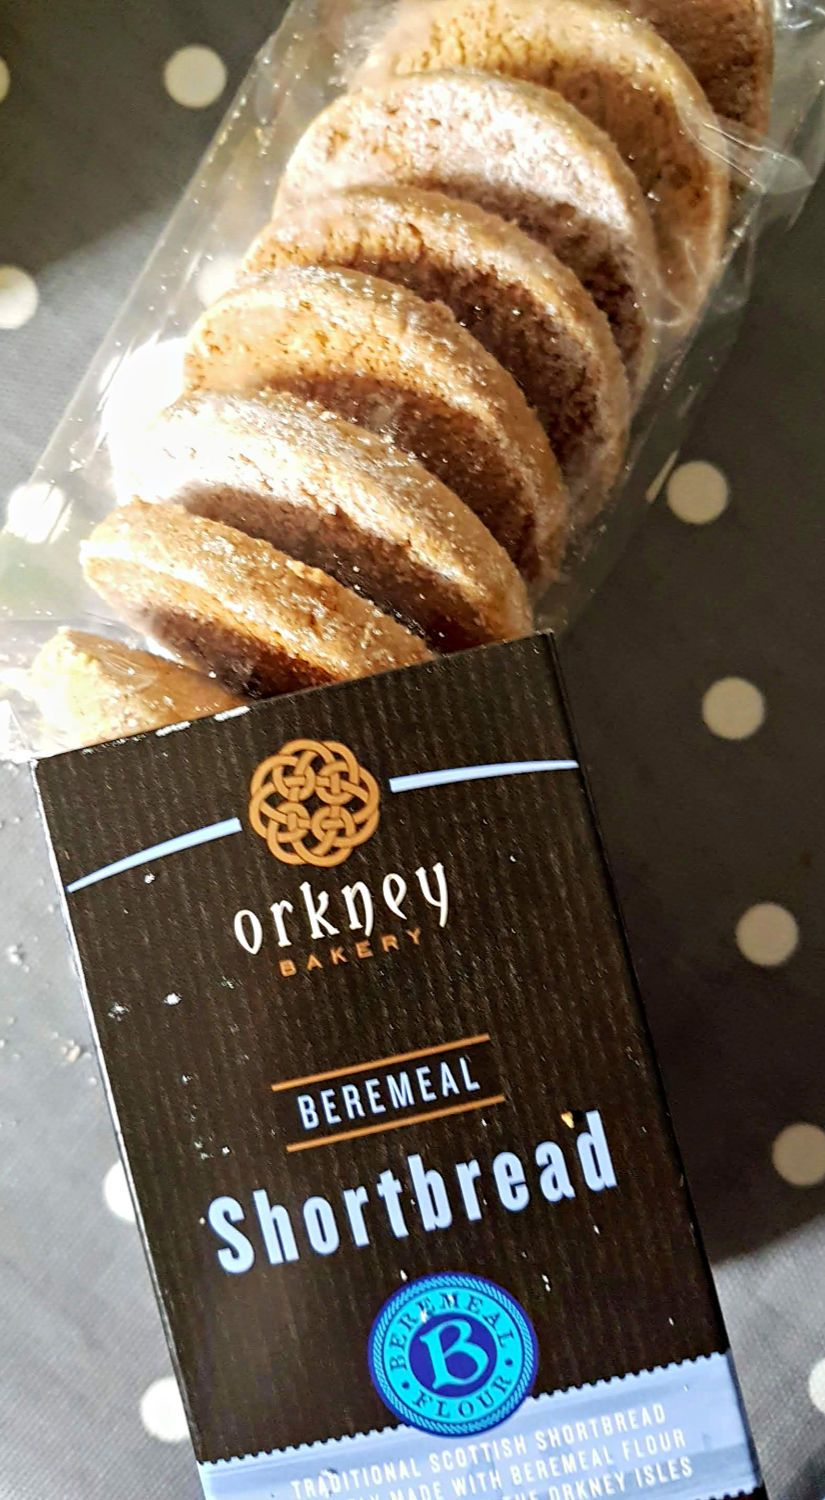 Here's the Orkney Bakery's retail version of their shortbread, using traditional beremeal, a kind of primitive barley grown in the northlands.